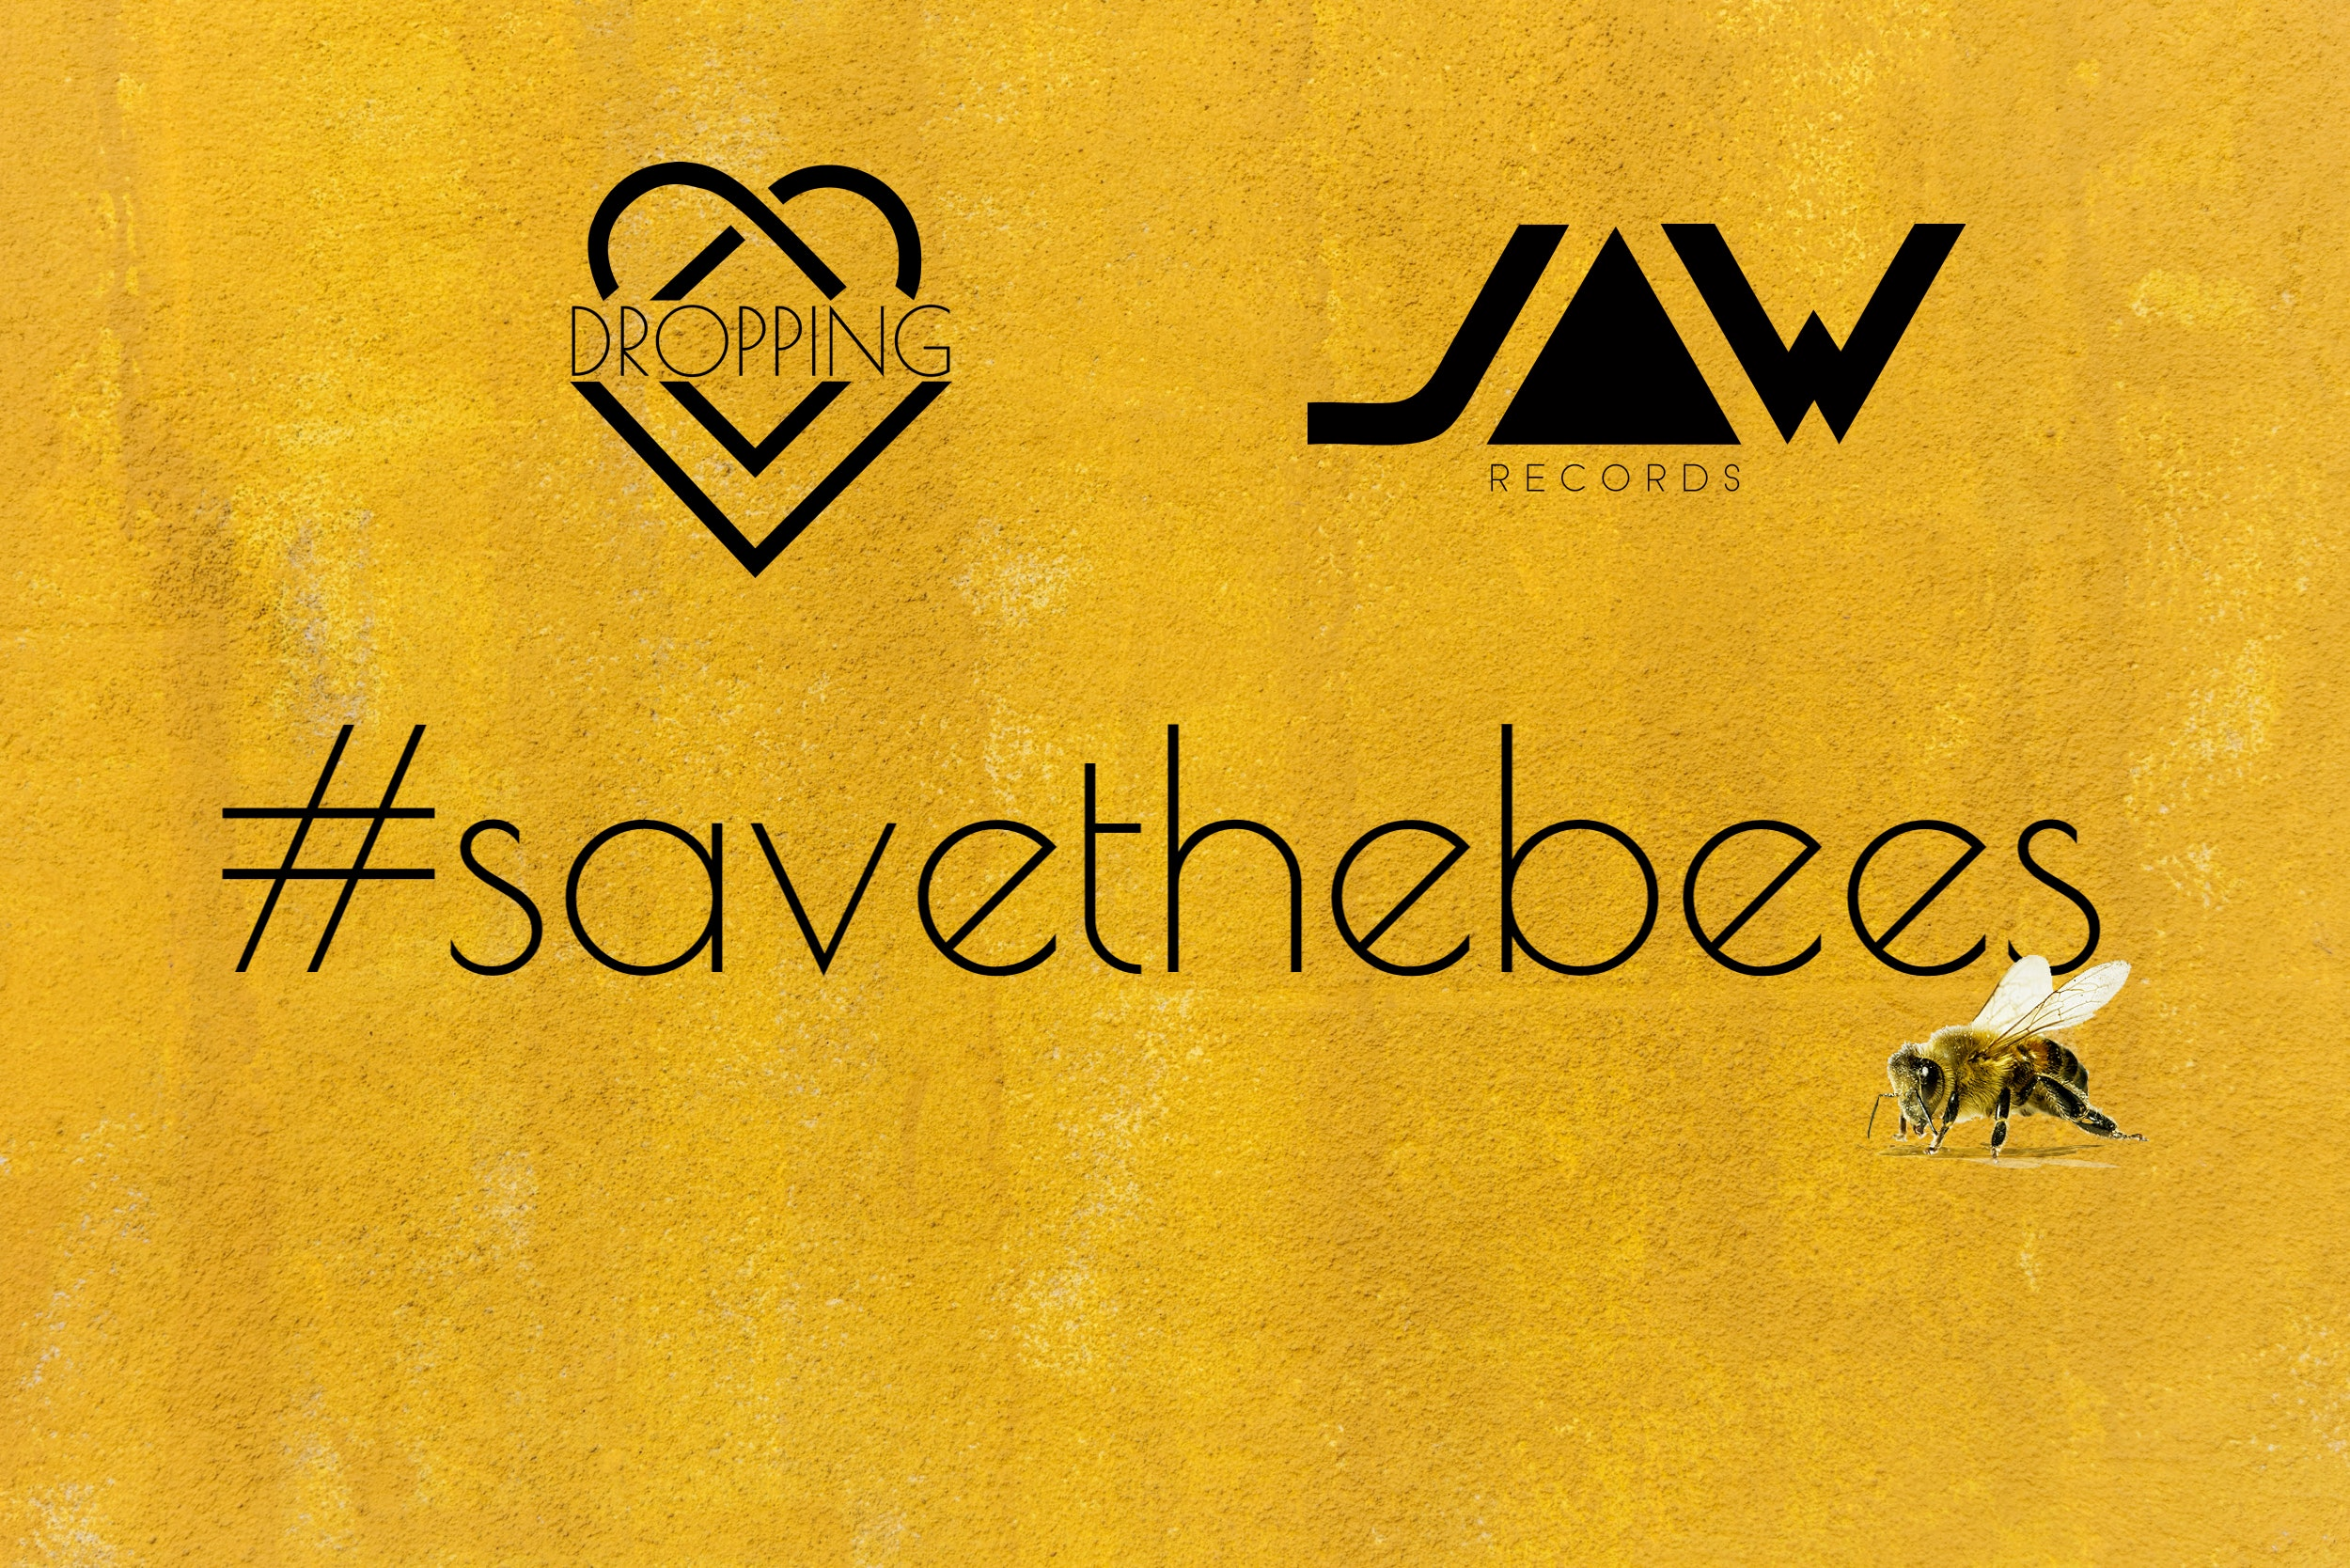 #SAVE THE BEES BY JAW